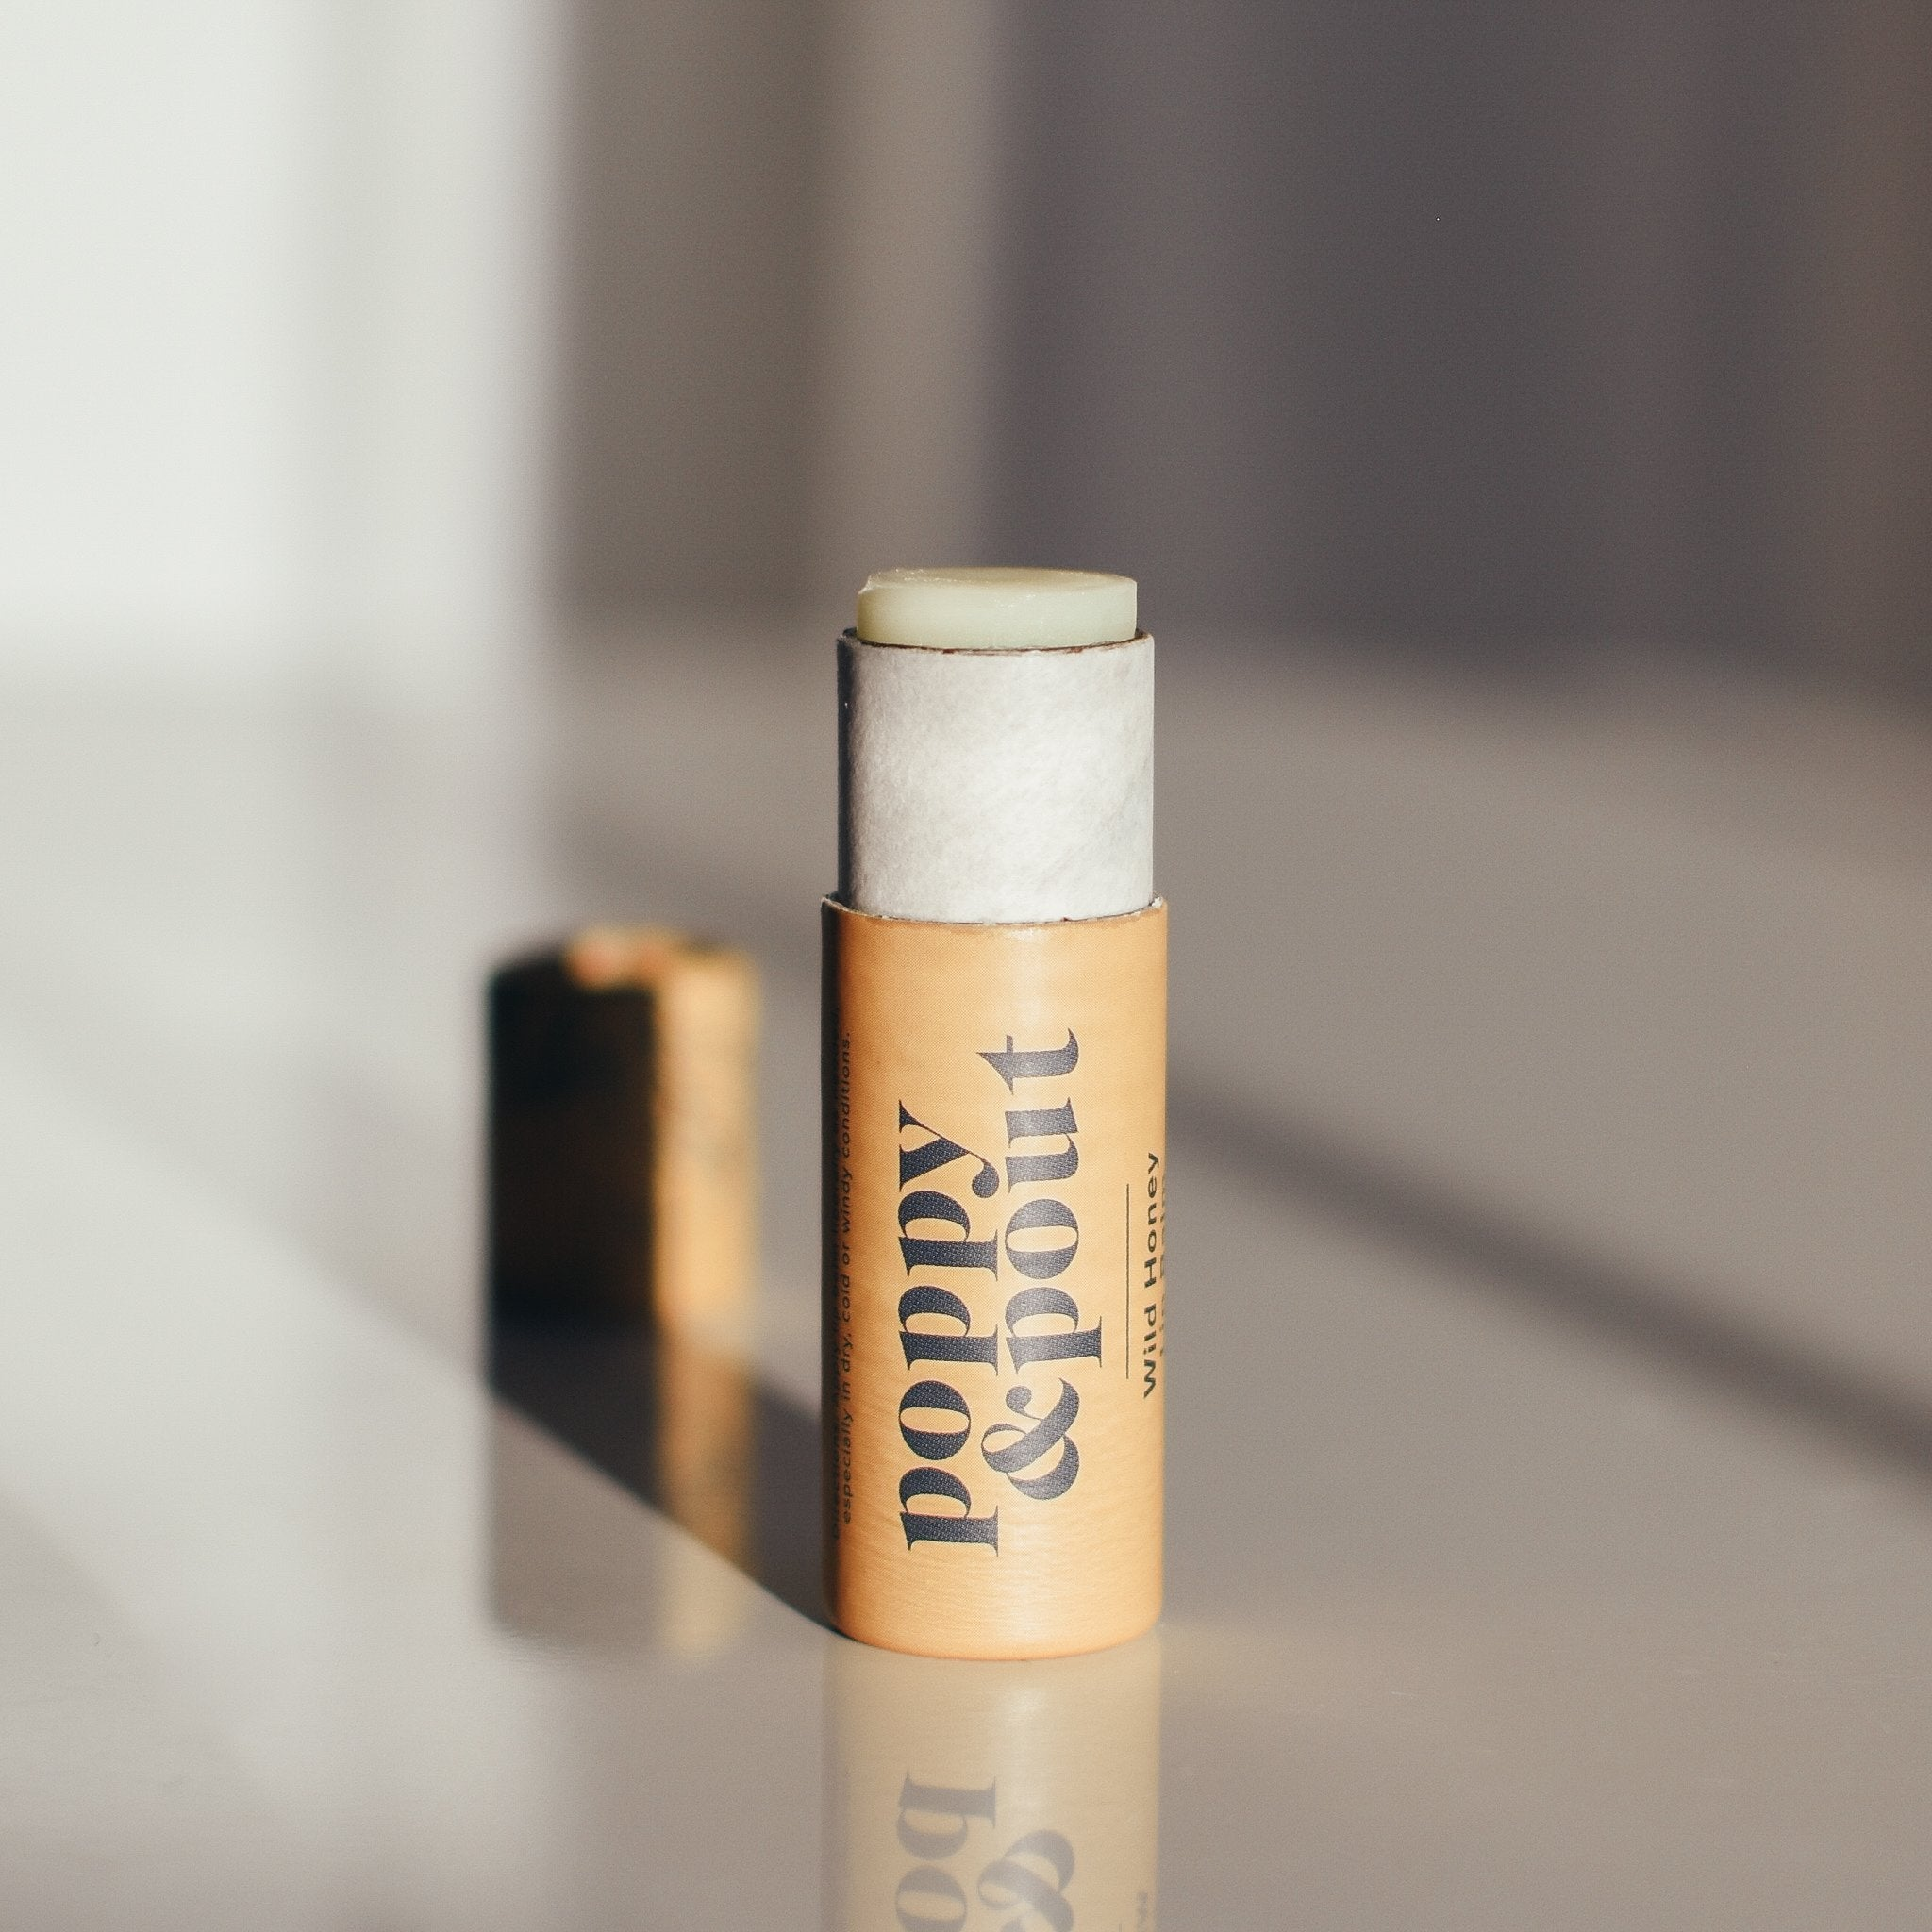 POPPY & POUT - WILD HONEY LIP BALM